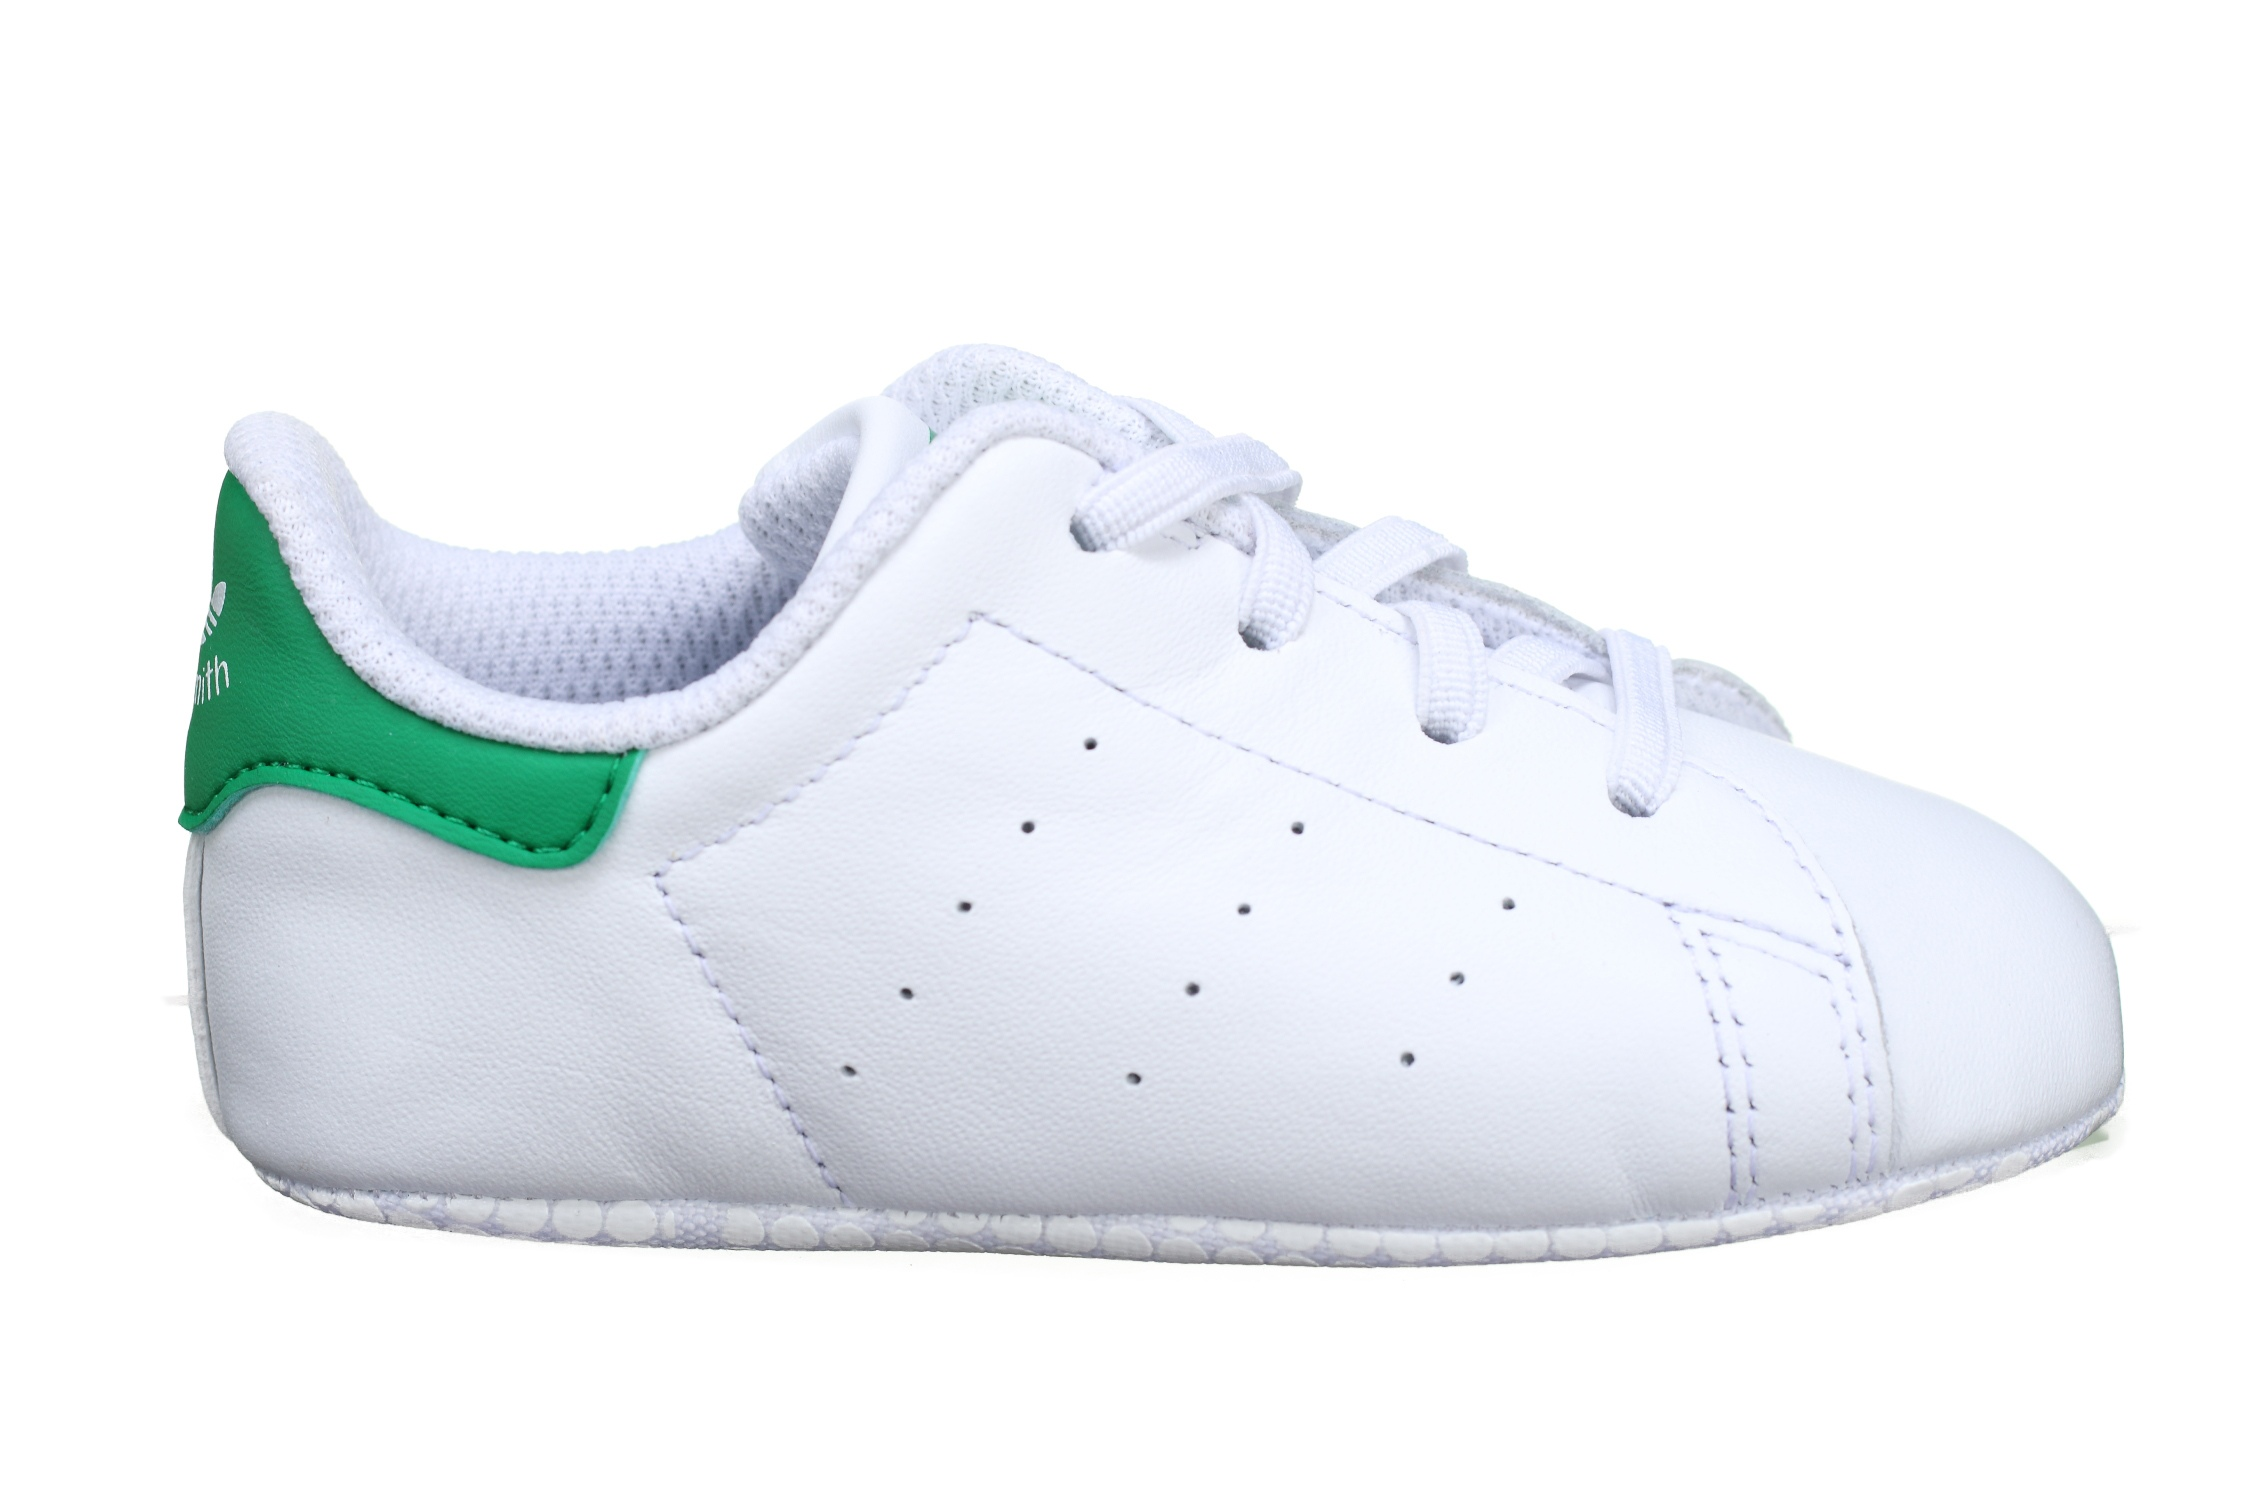 https://www.leadermode.com/170035/adidas-stan-smith-crib-b24101-blanc-vert.jpg